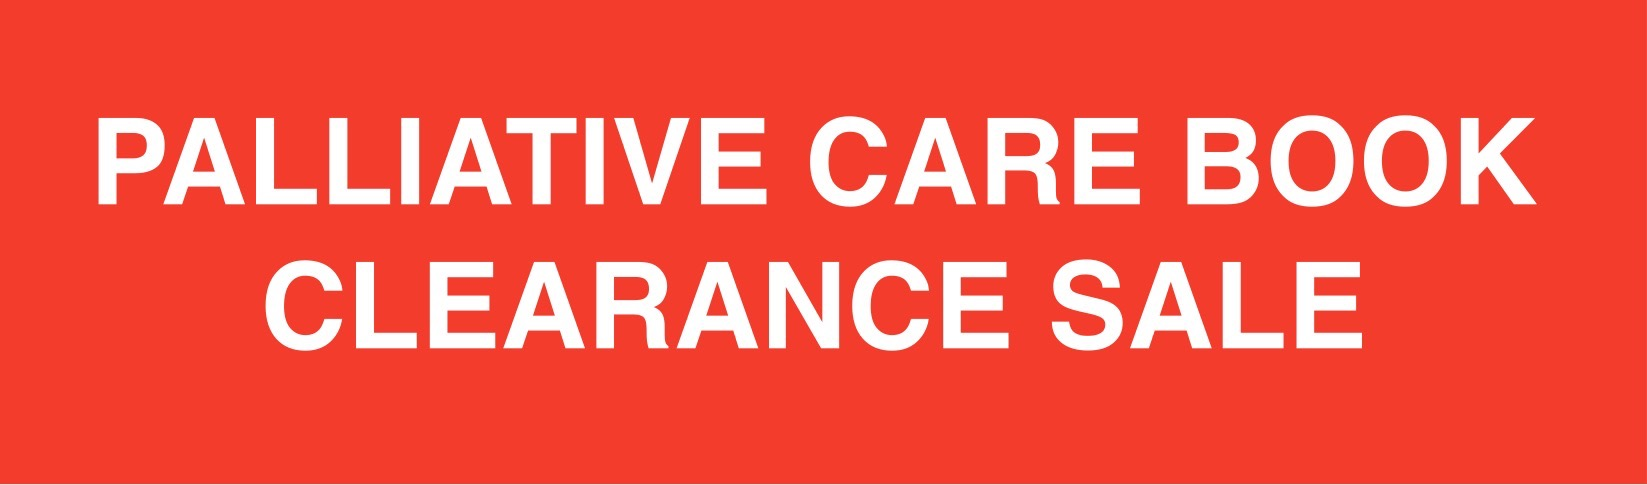 PALLIATIVE CARE BOOK CLEARANCE SALE